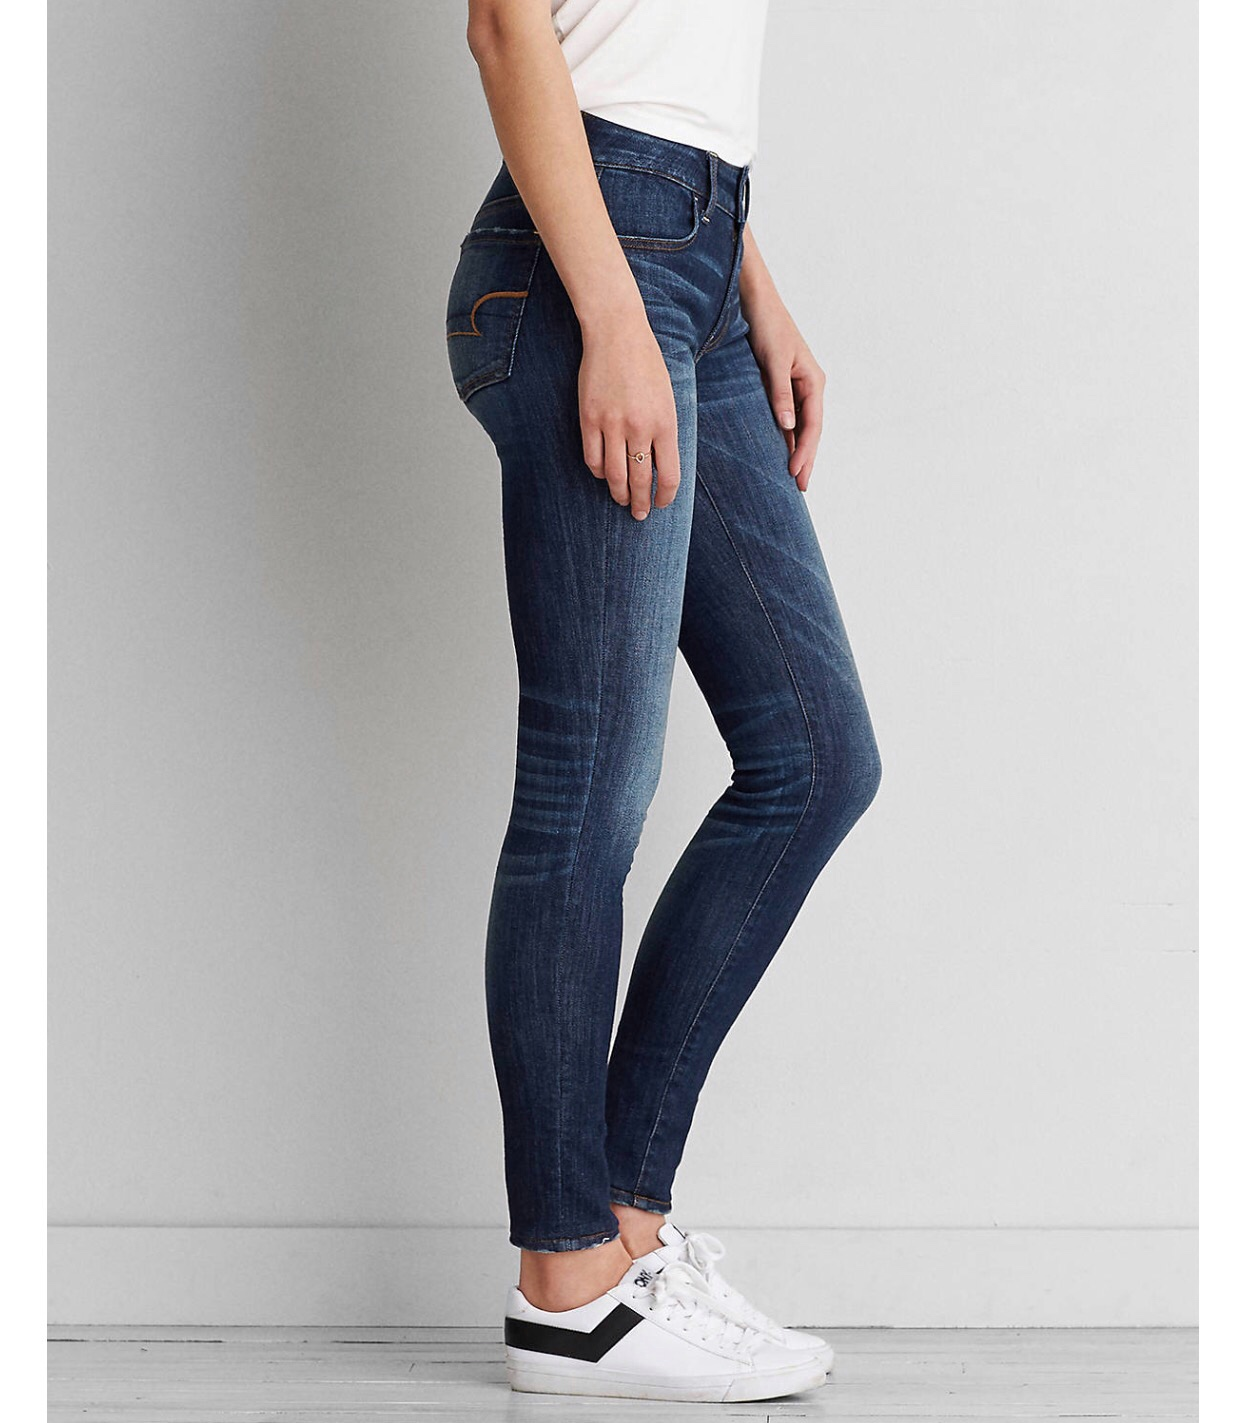 e9a0d3d9835 American Eagle Outfitters  JEGGING - Elevated Style